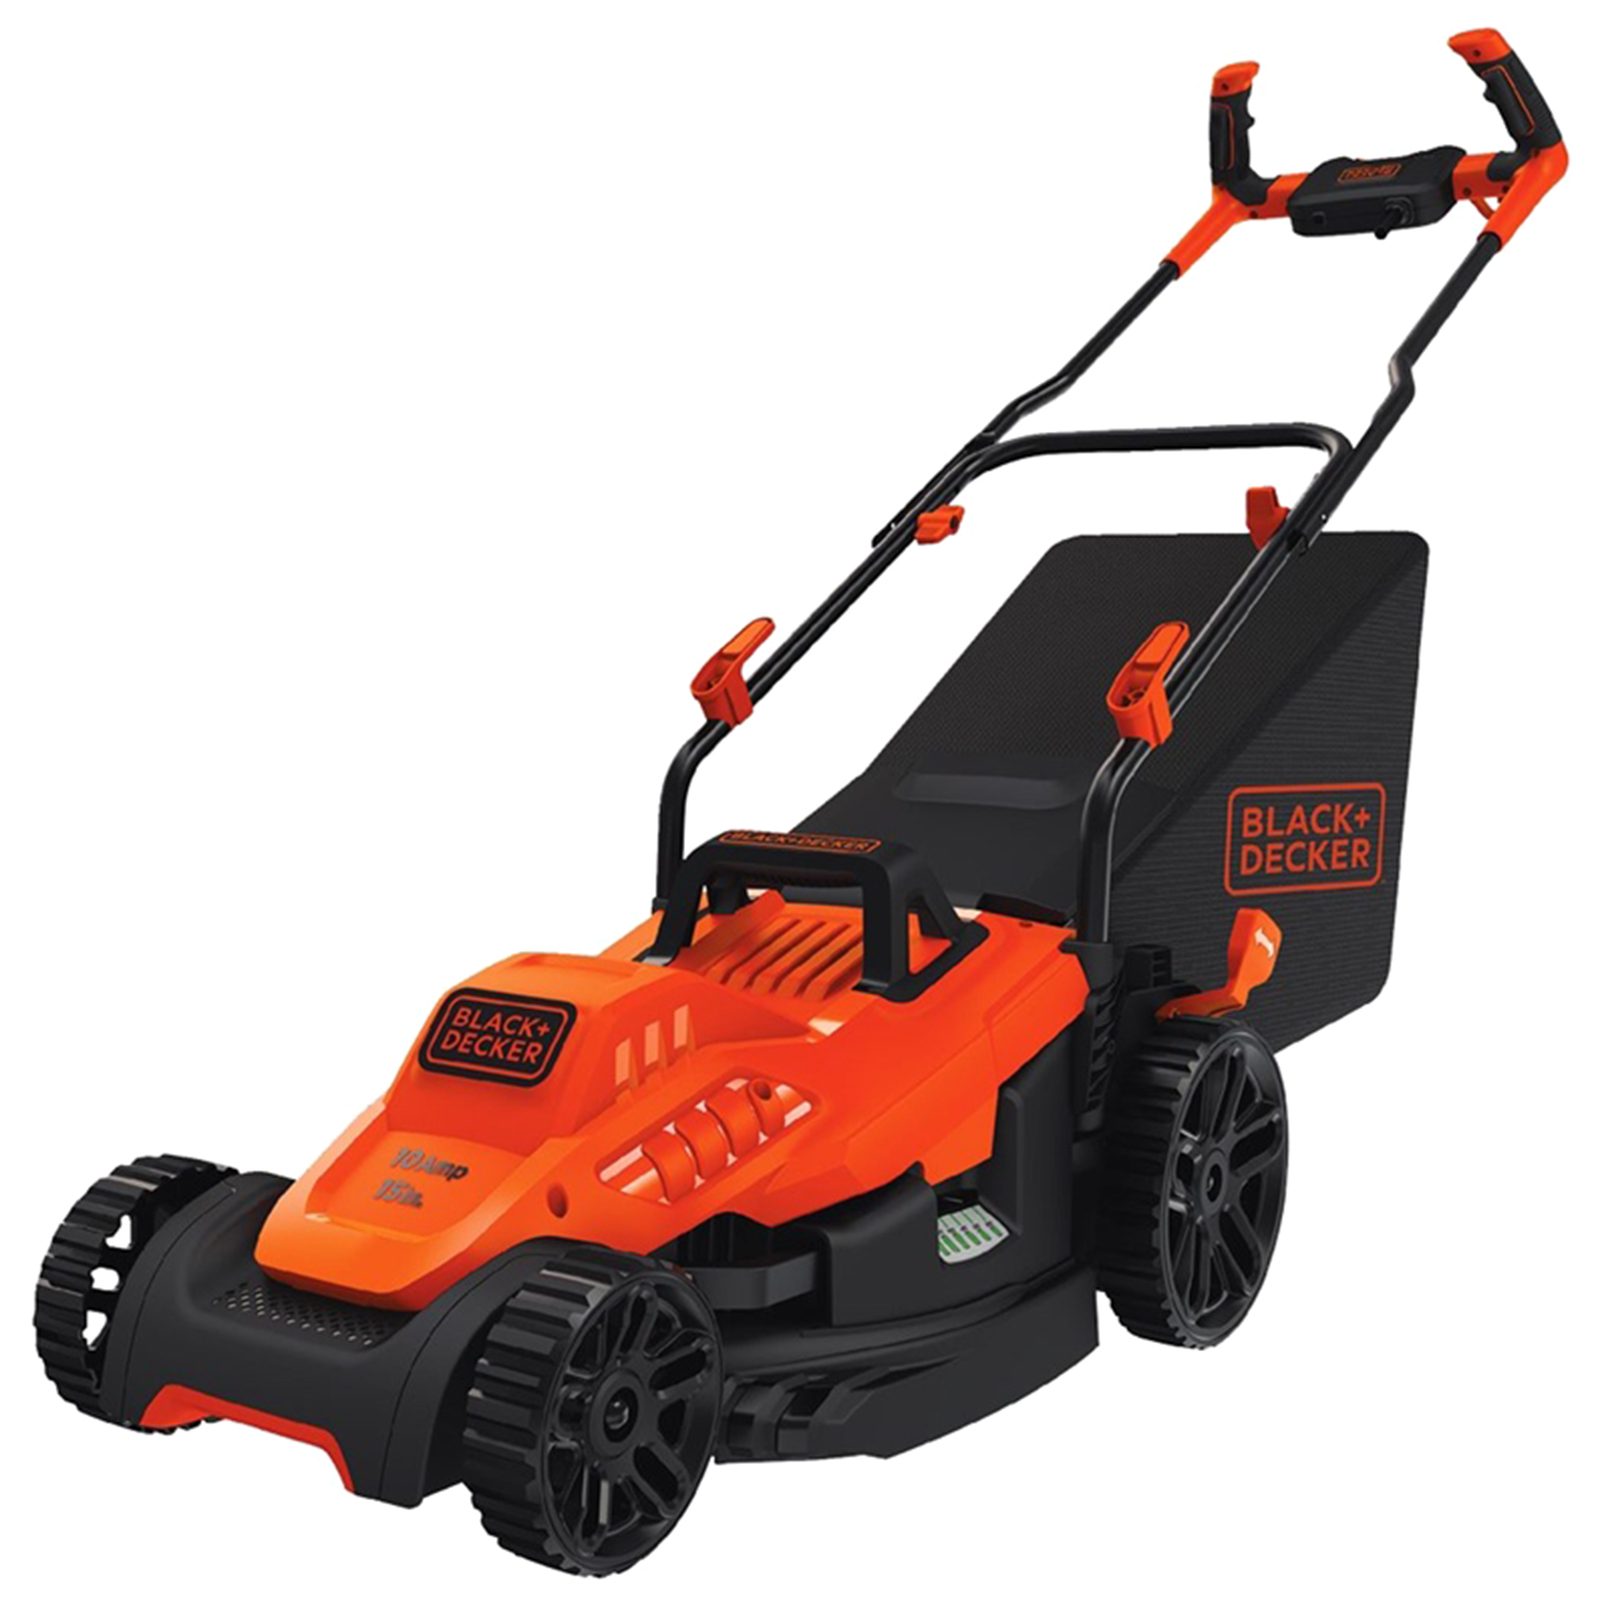 small resolution of find the best electric lawn mowers from top brands at sears scott s lawn mower wiring diagram black amp decker lawn mower wiring diagram